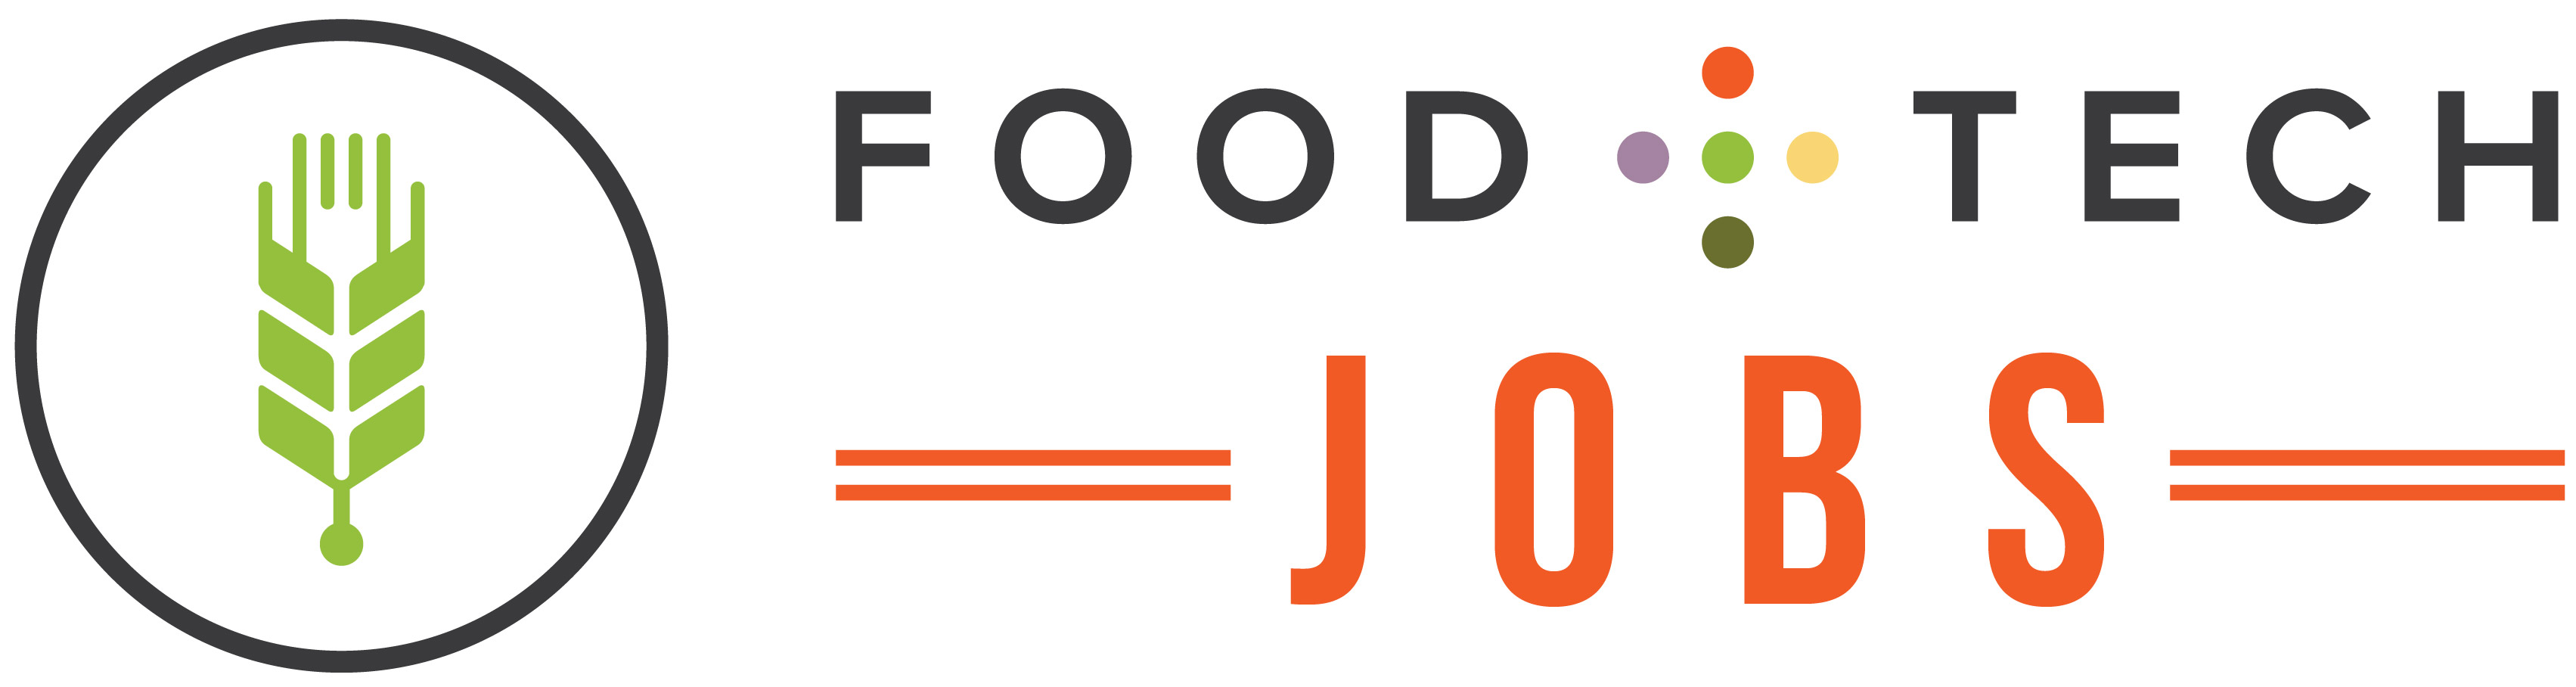 Food + Tech Job Board